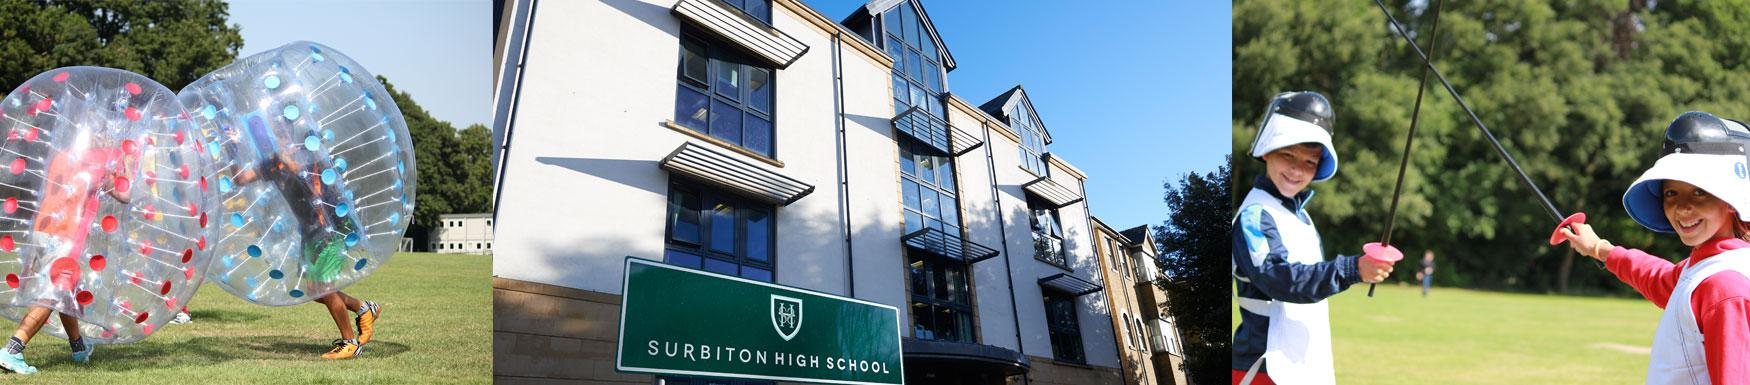 School holiday camp activities for all ages from 4-11 year olds at Surbiton High Prep, Surbiton